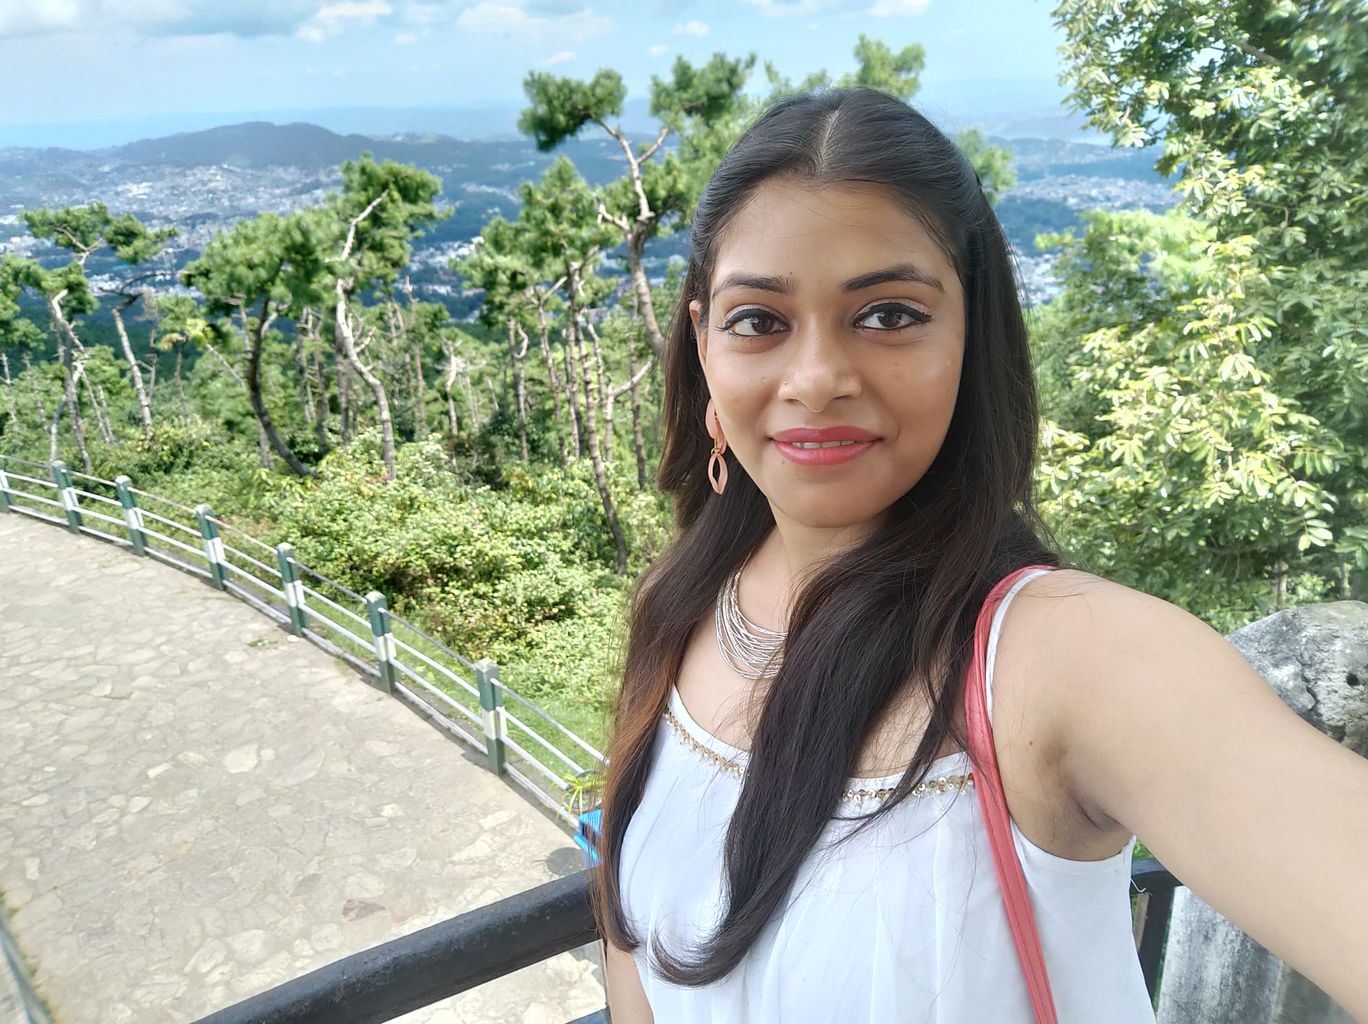 Photo of Shillong View Point By amita am